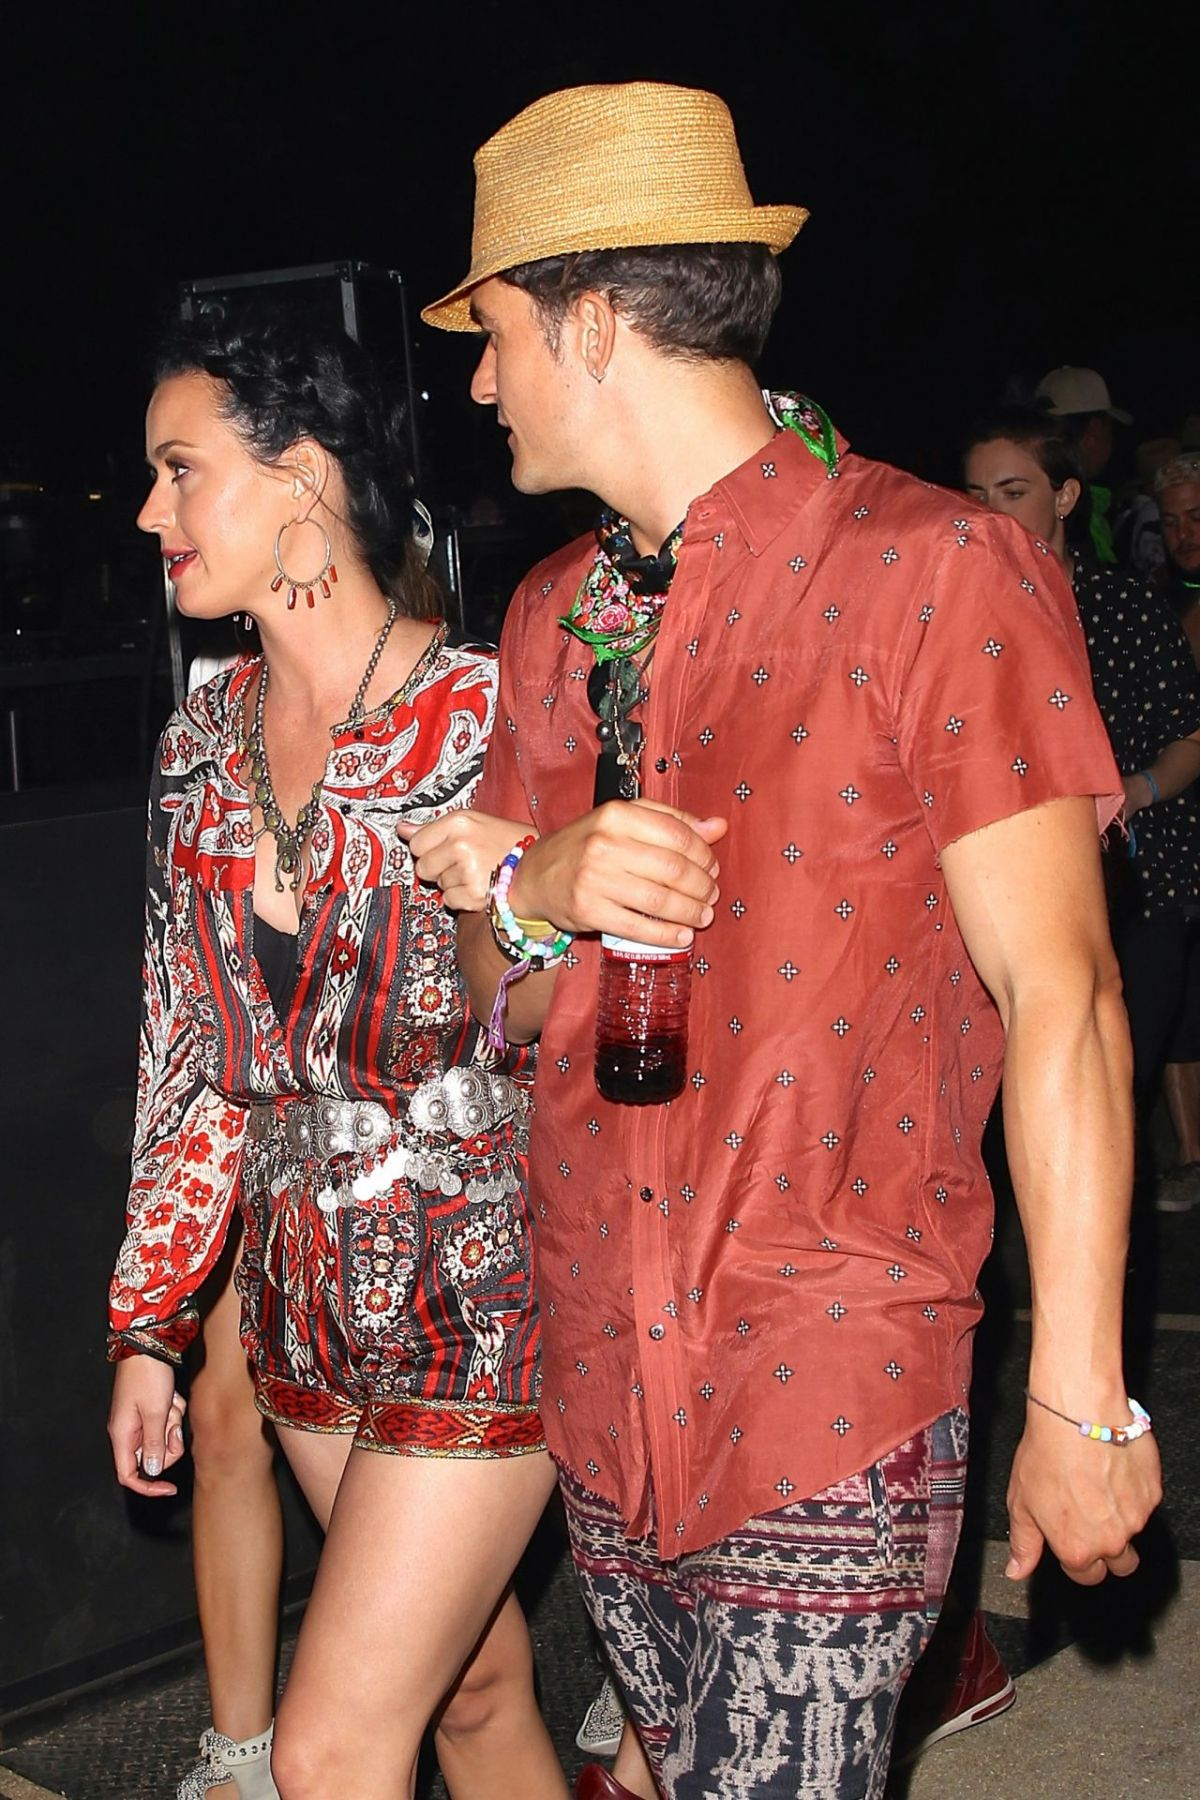 KATY PERRY at 2016 Coachella Valley Music and Arts Festival in Indio, Day Three 04/17/2016